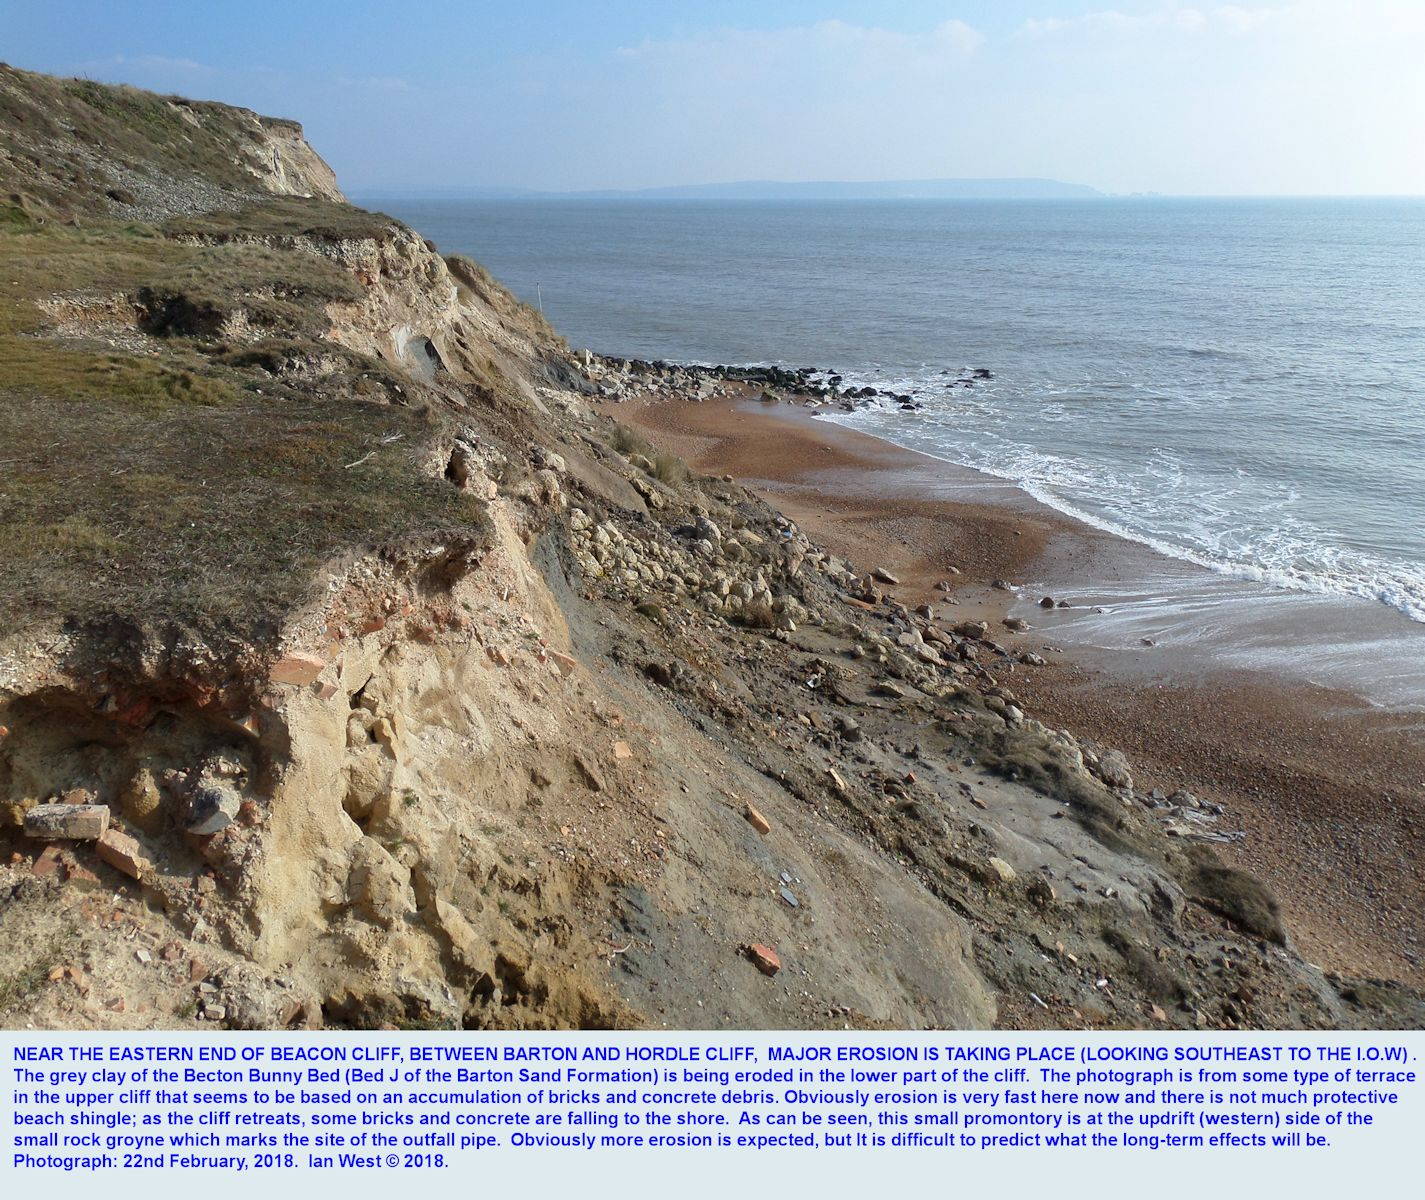 Collapsing cliff, with brick and concrete debris, at a small promontory of rock armour at the Sewer outfall promontory, at the eastern end of Beacon Cliff, between Barton-on-Sea and Hordle Cliff, Hampshire, southern England, 22nd February 2018